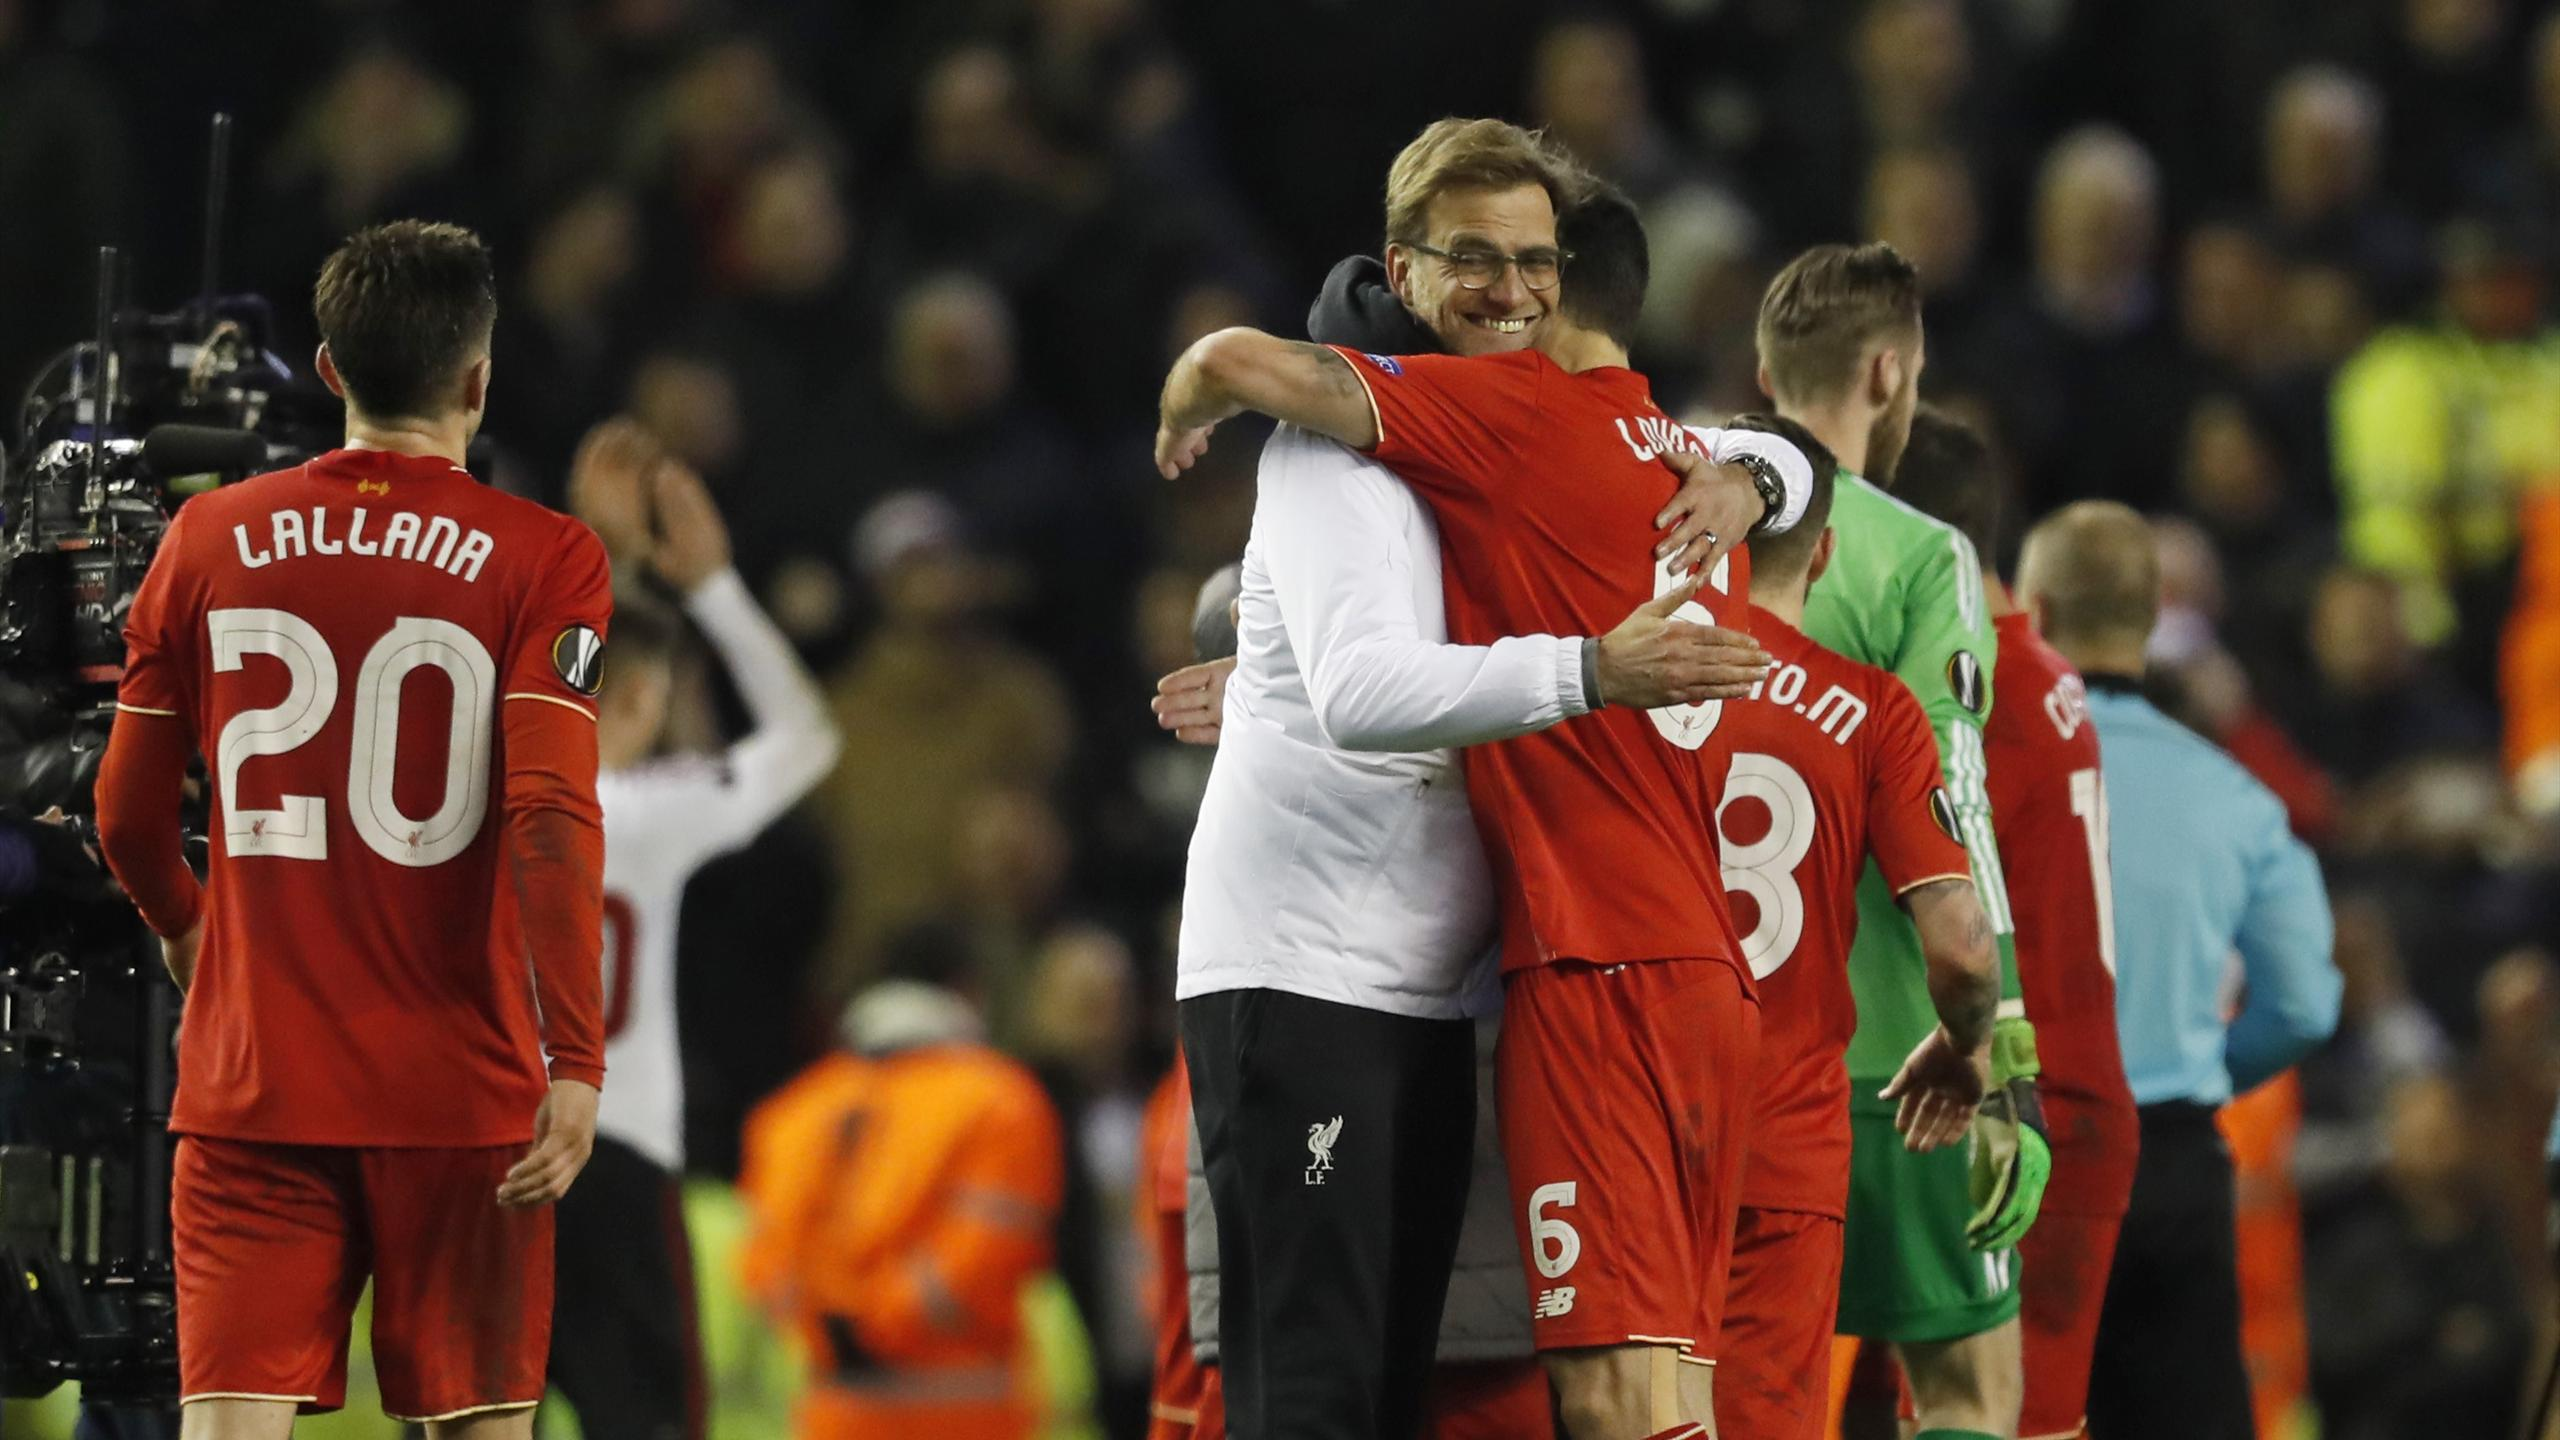 Liverpool manager Juergen Klopp celebrates with Dejan Lovren at the end of the match